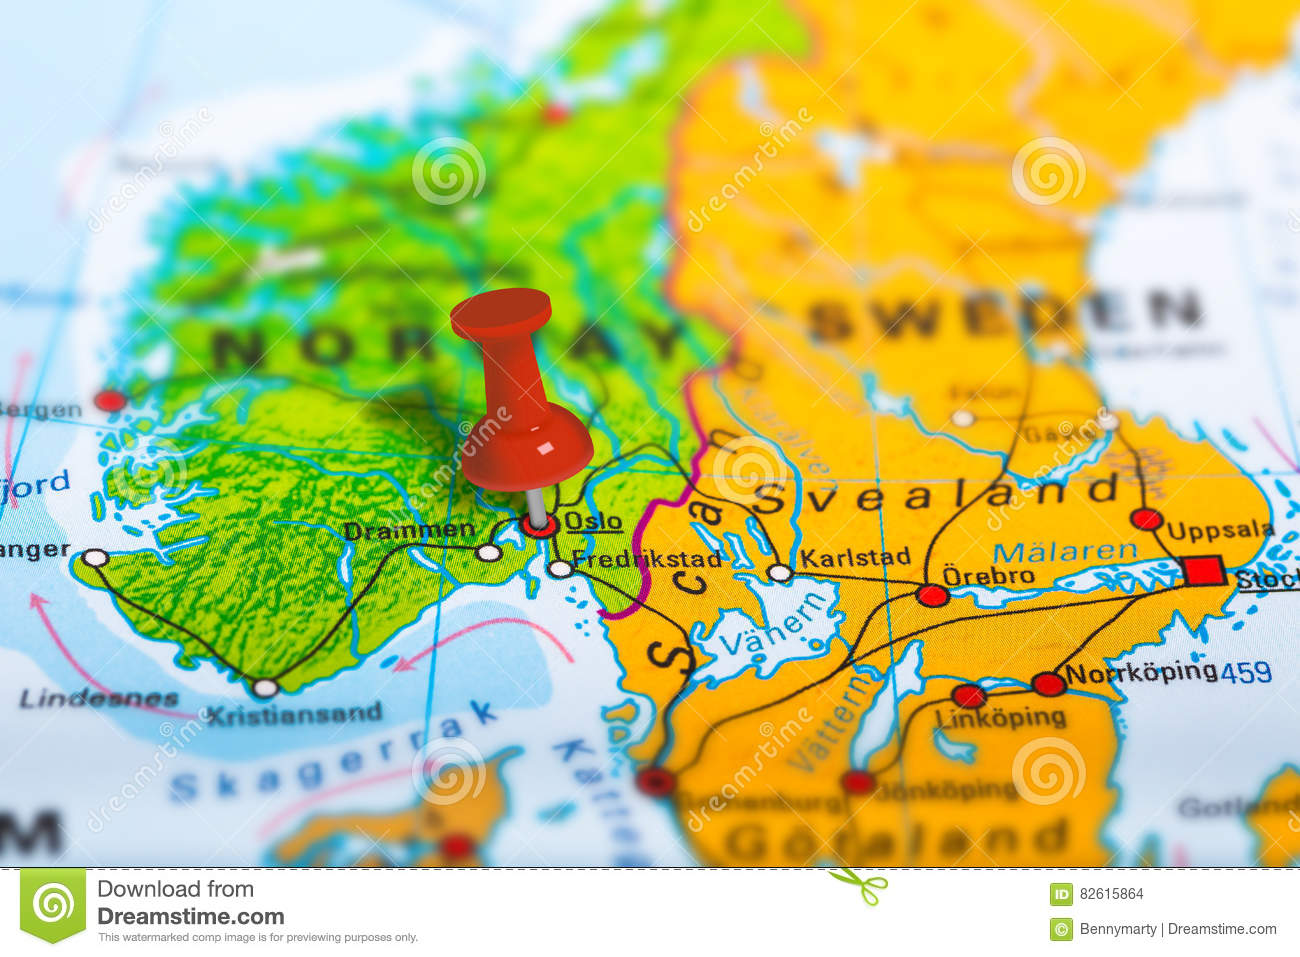 Oslo Norway Map Stock Photo Image - Norway map world